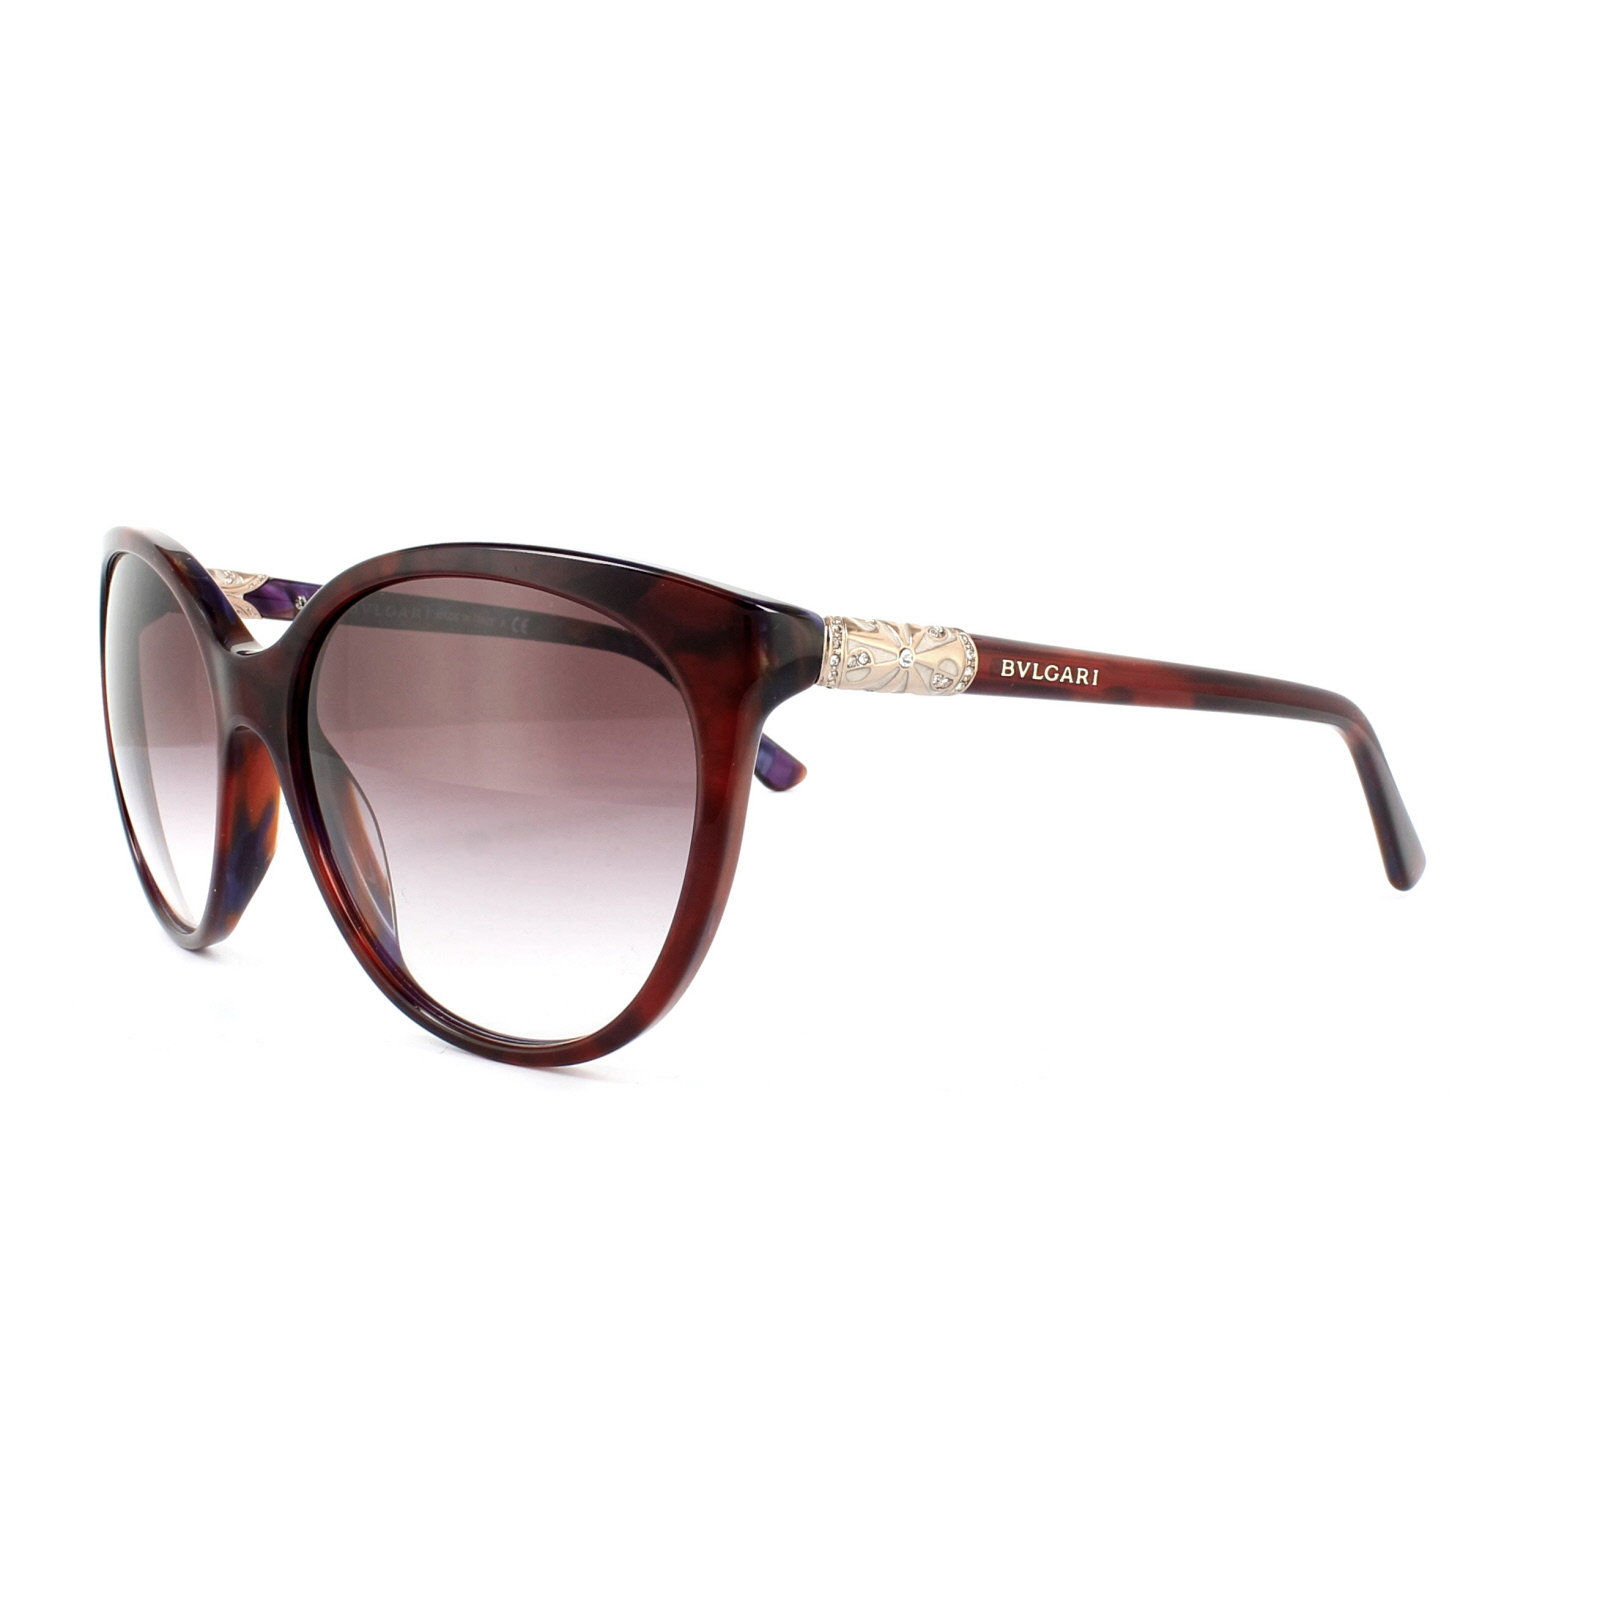 5080bf8234347 Sentinel Bvlgari Sunglasses 8147B 52708H Top Red on Marble Violet Violet  Gradient